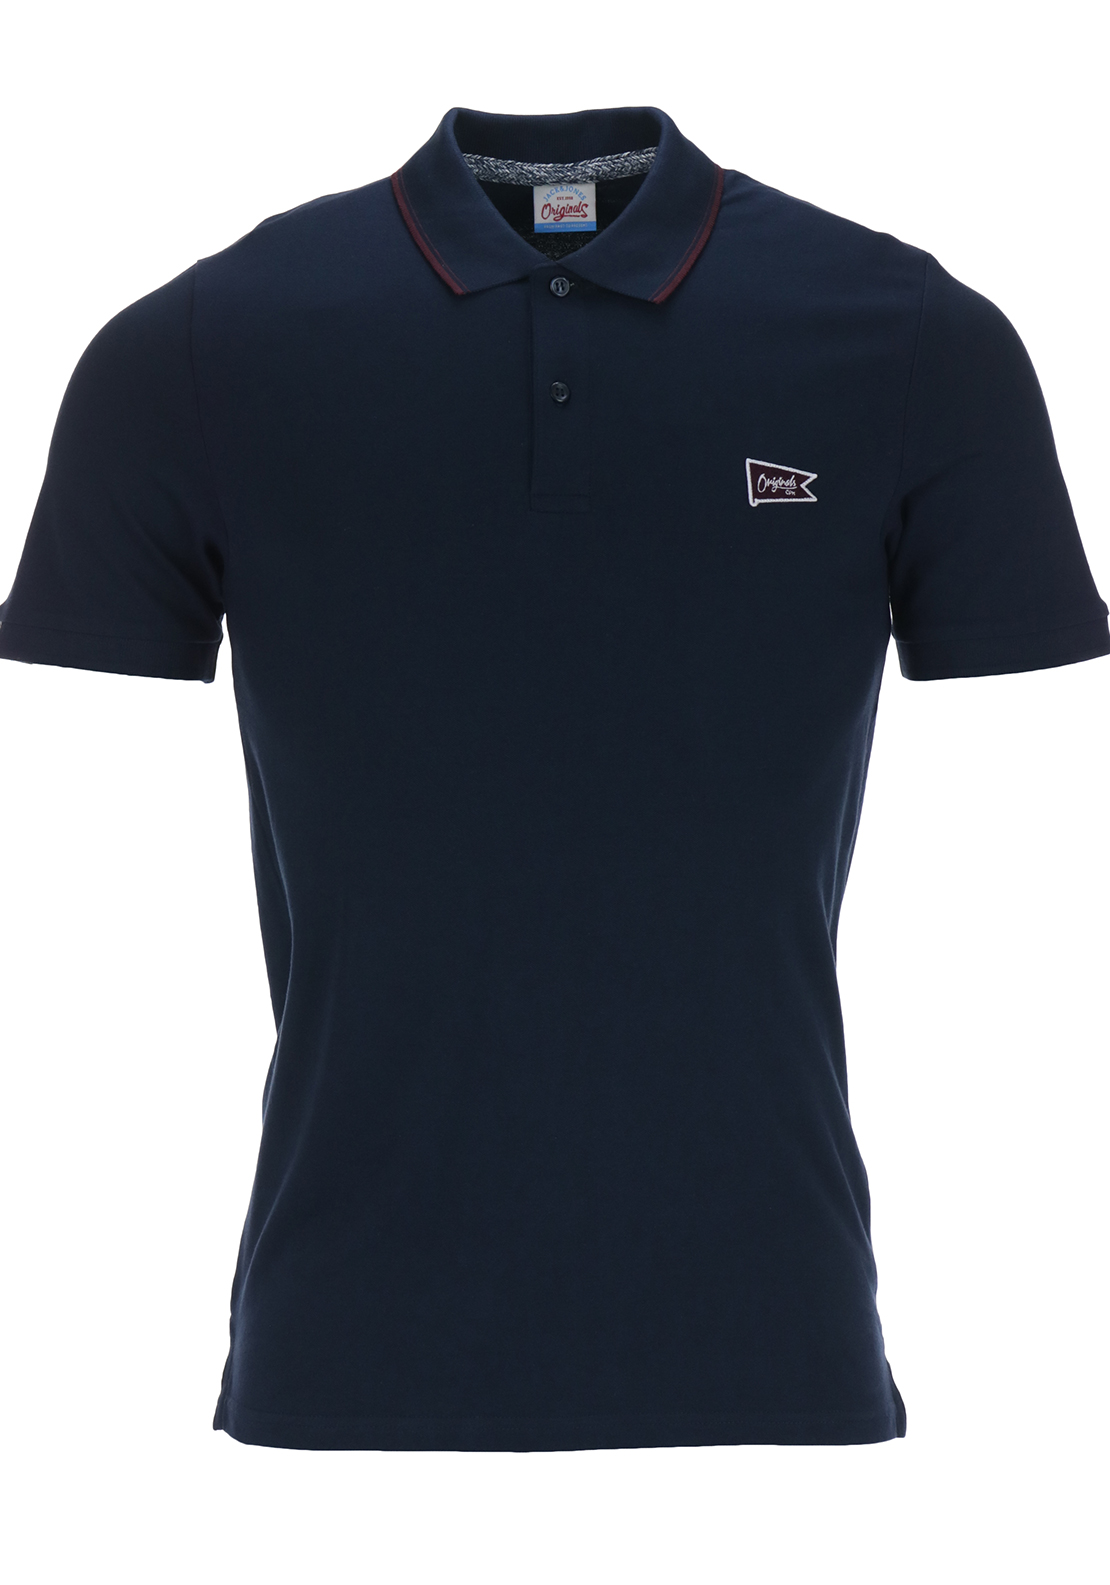 Jack & Jones Originals Mens Brand Short Sleeved Polo Shirt, Navy